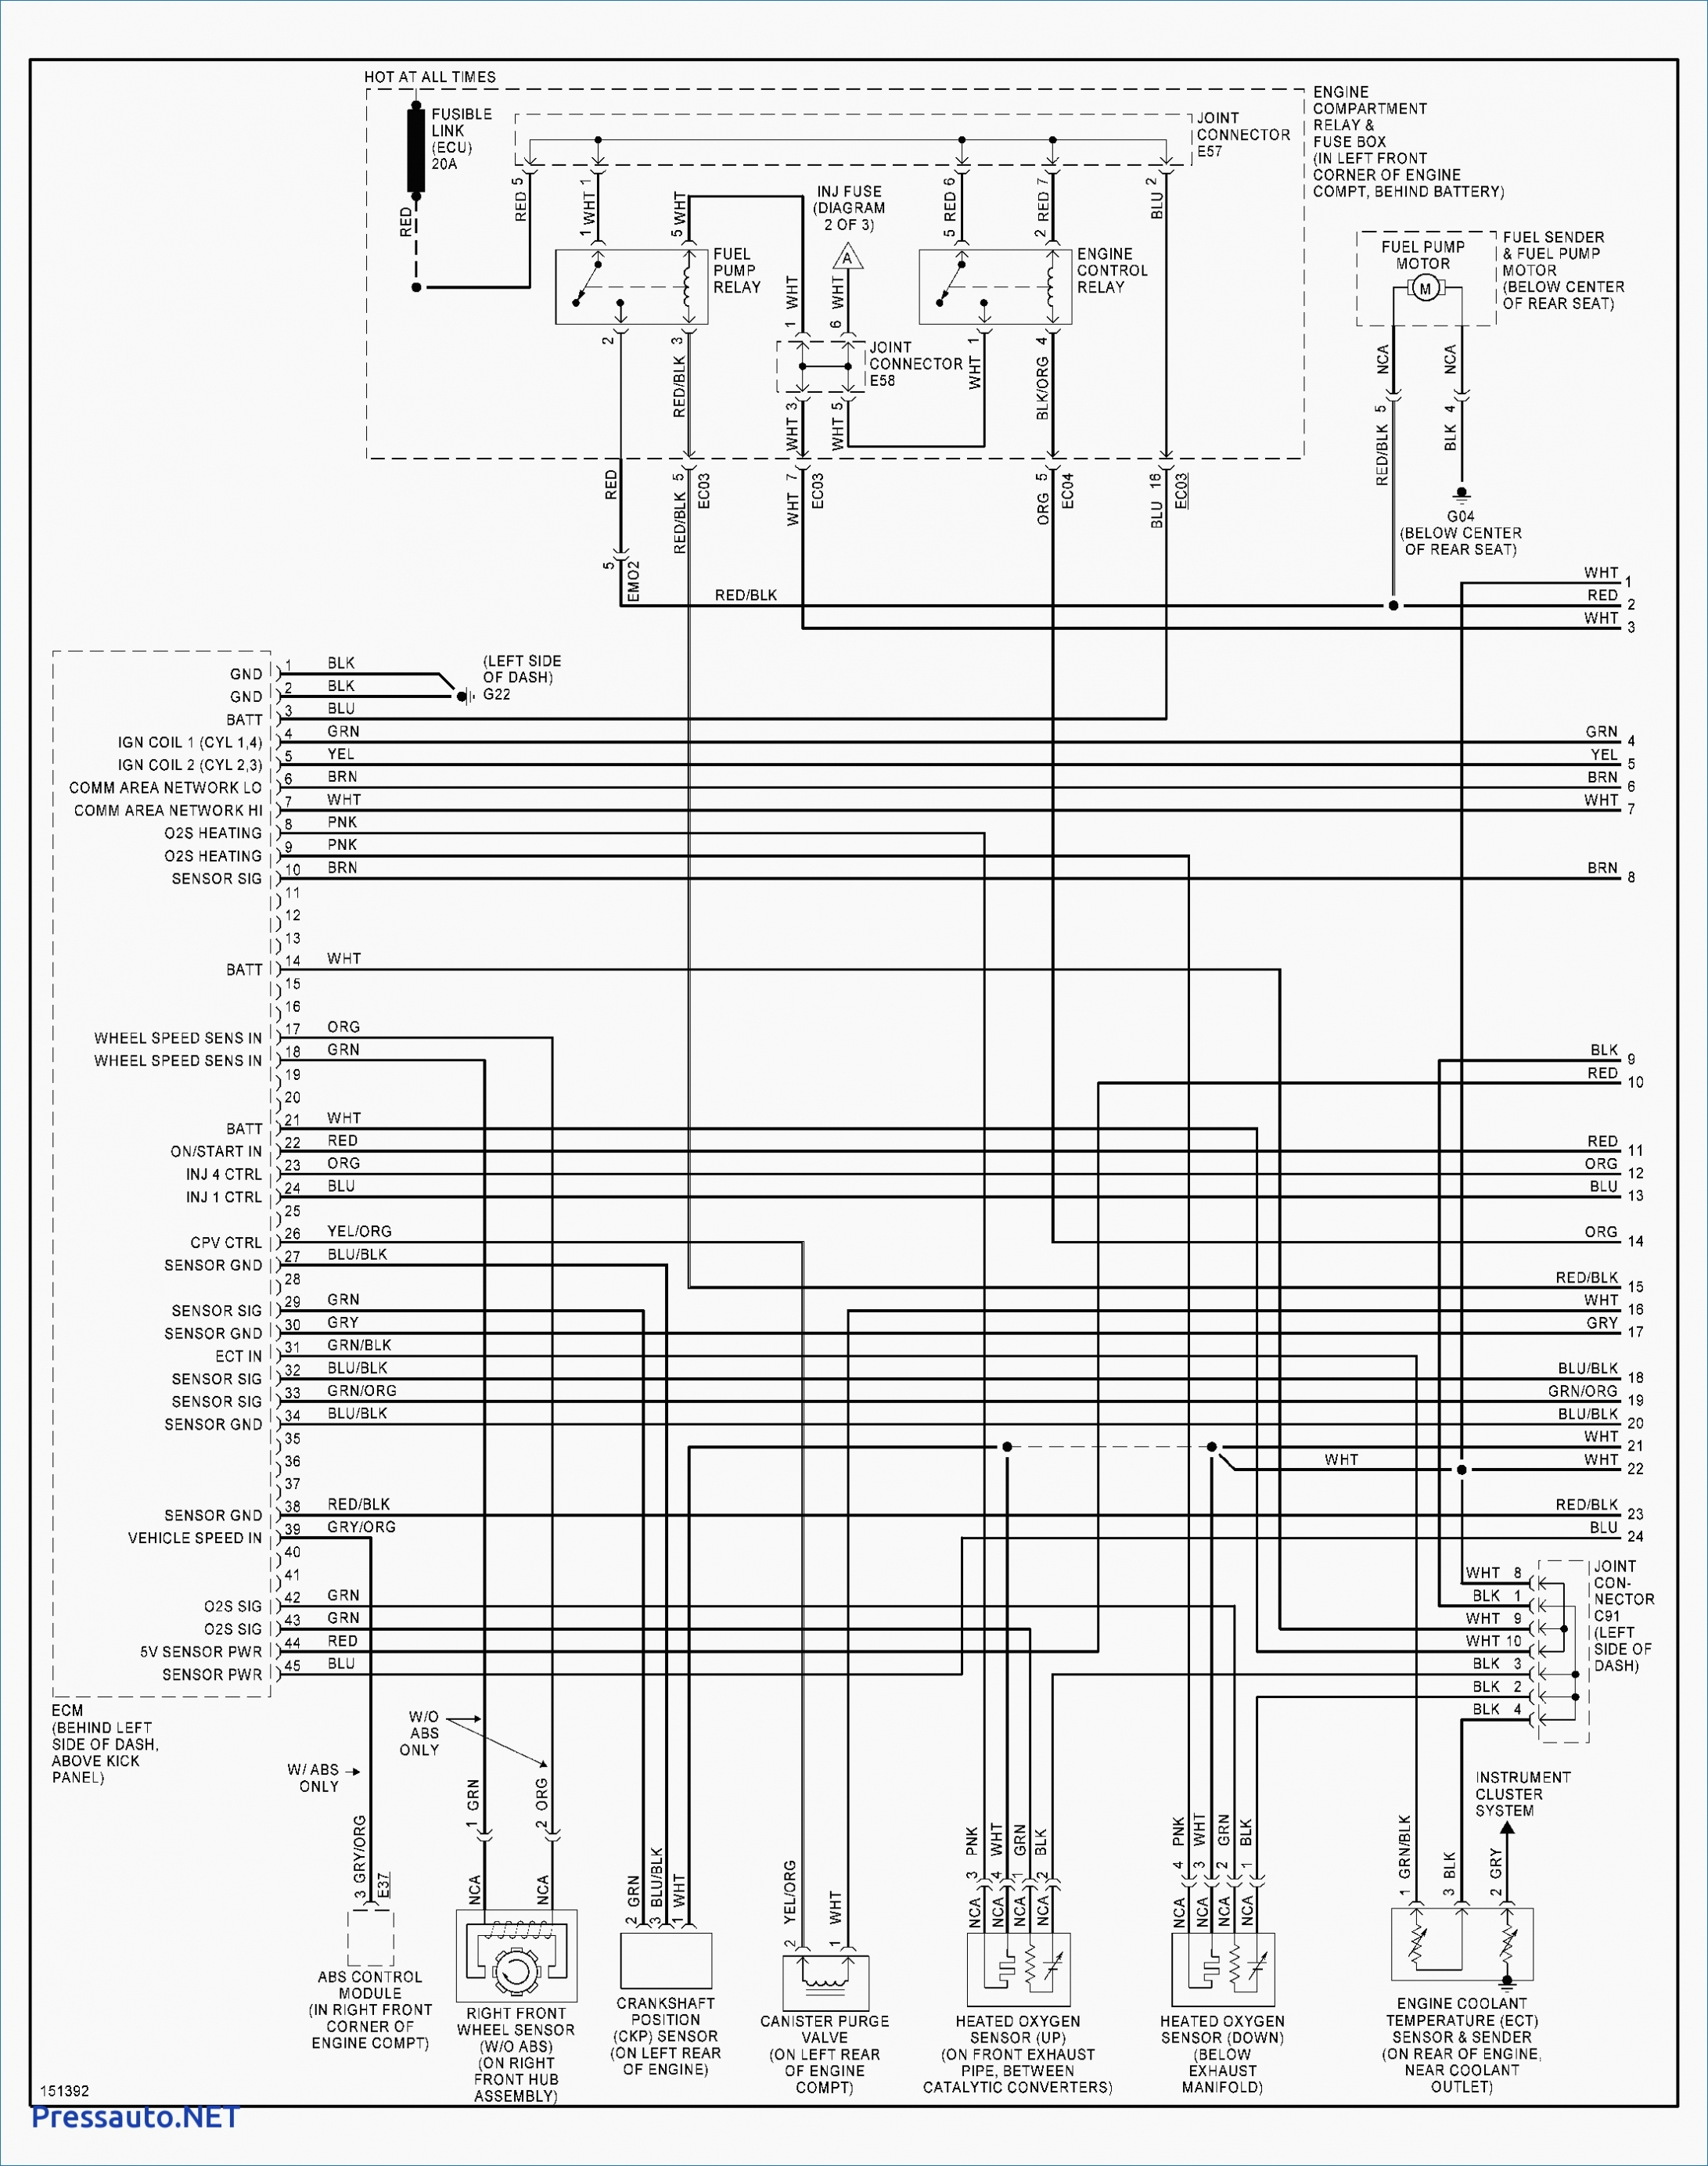 Briggs And Stratton V Twin Wiring Diagram | Air American Samoa - Briggs And Stratton V Twin Wiring Diagram